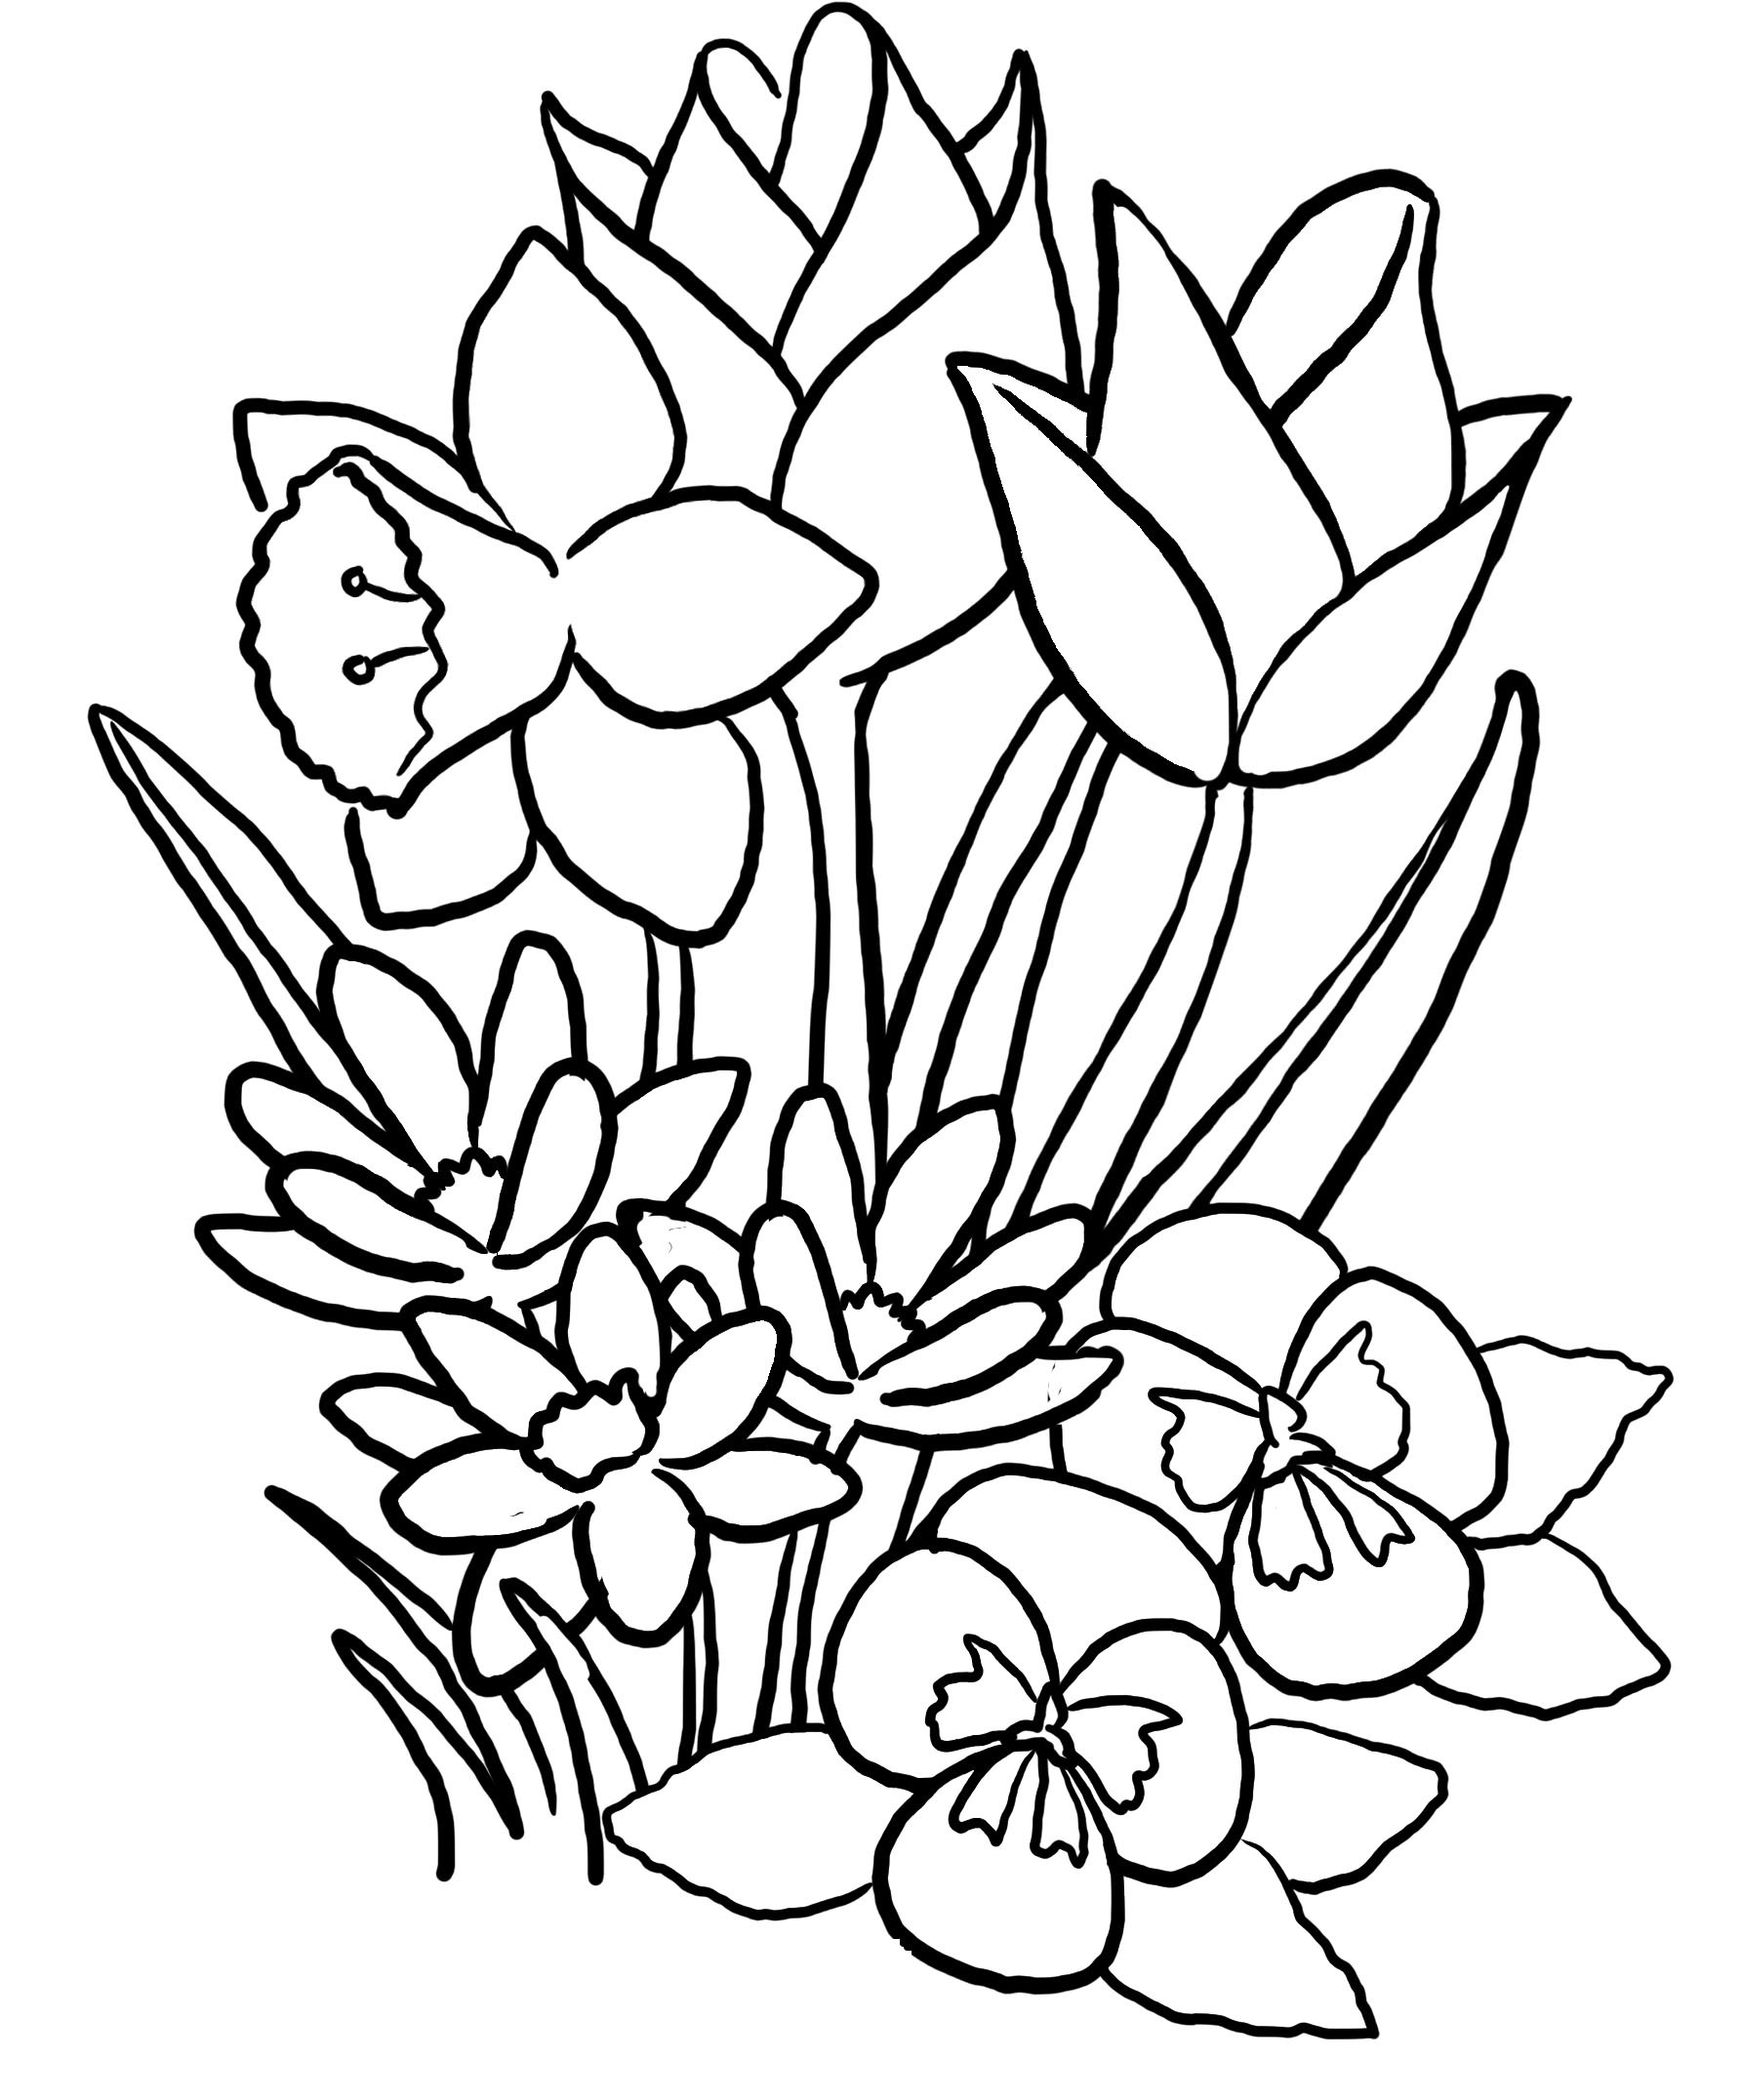 1785x2152 Rose Bud Flower Coloring Pages For Kids Inspirational Easy Kids